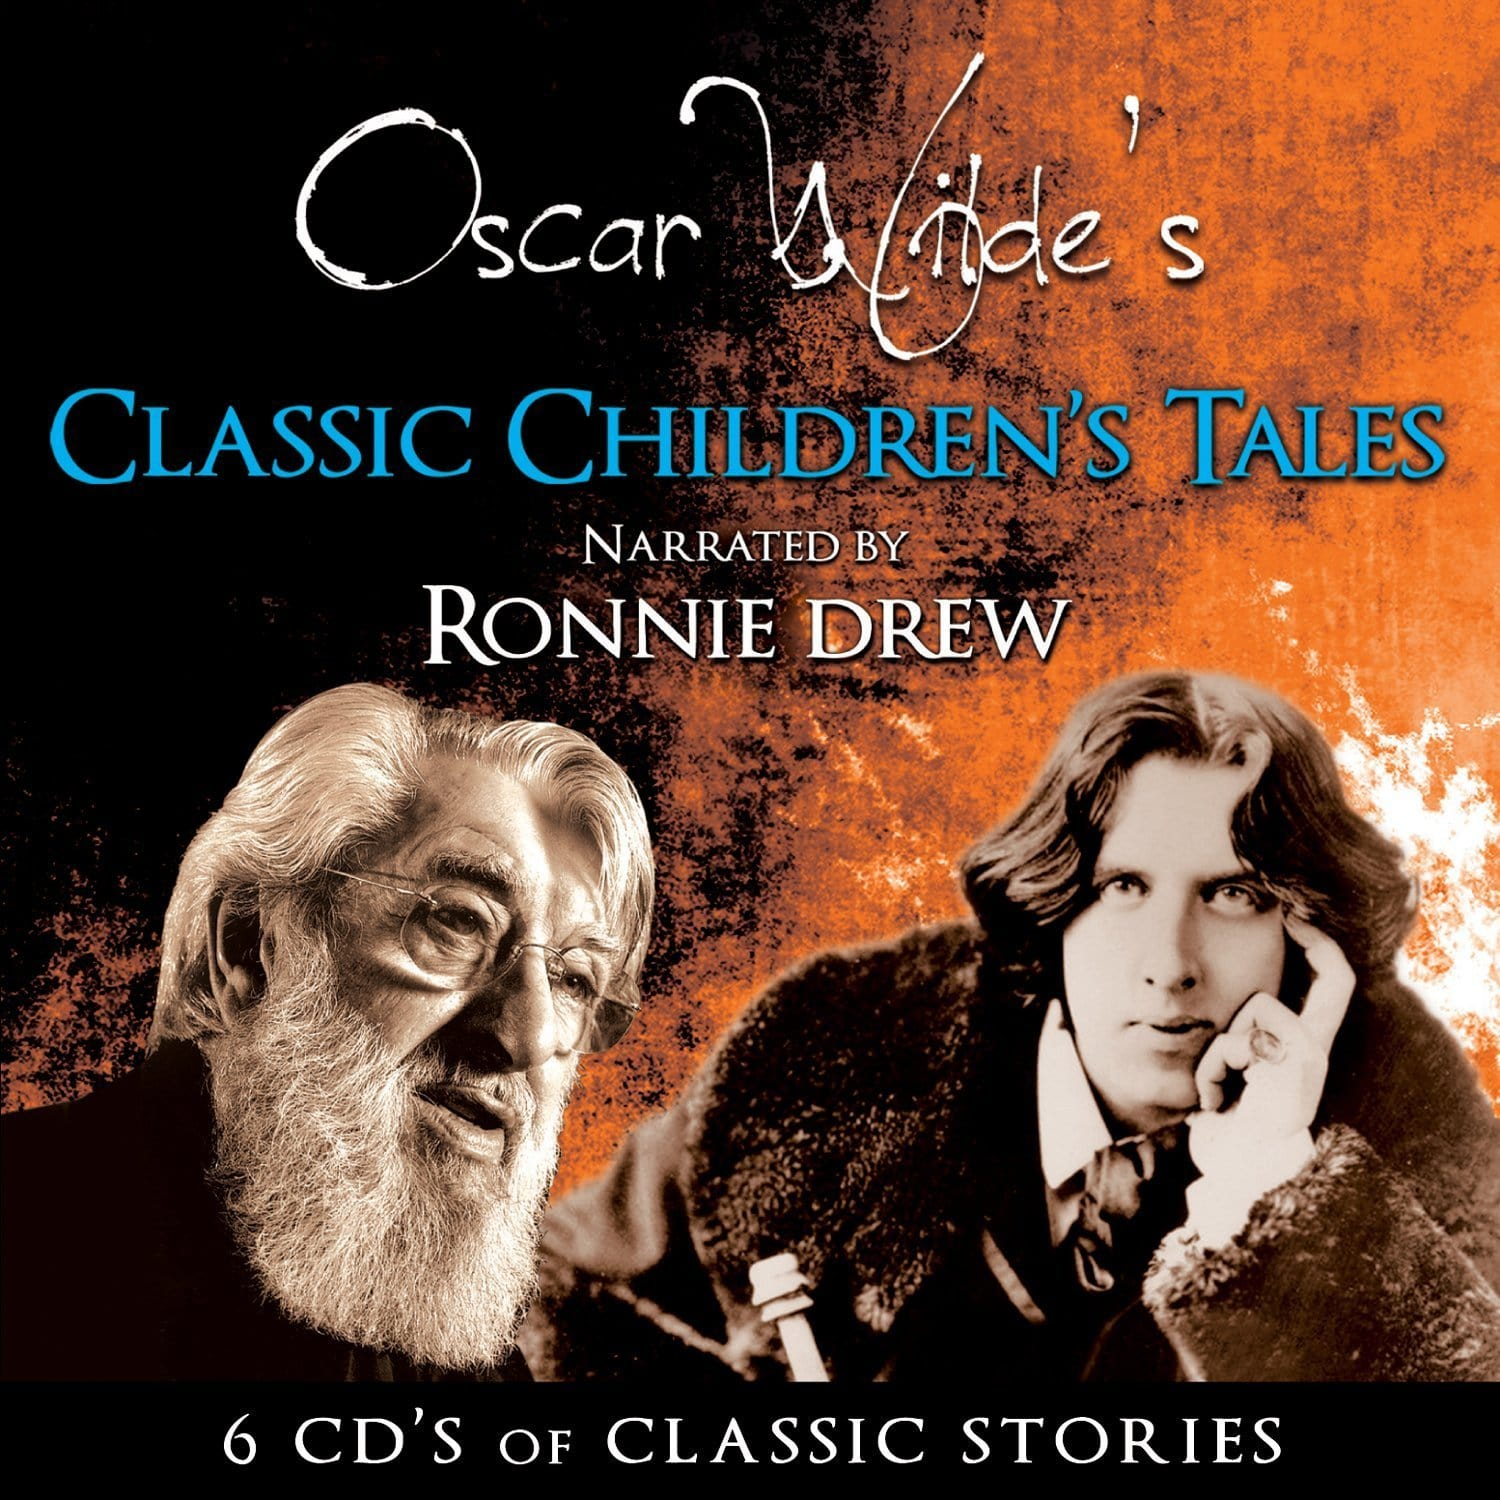 Oscar Wilde's Classic Children's Tales: Ronnie Drew [CD]